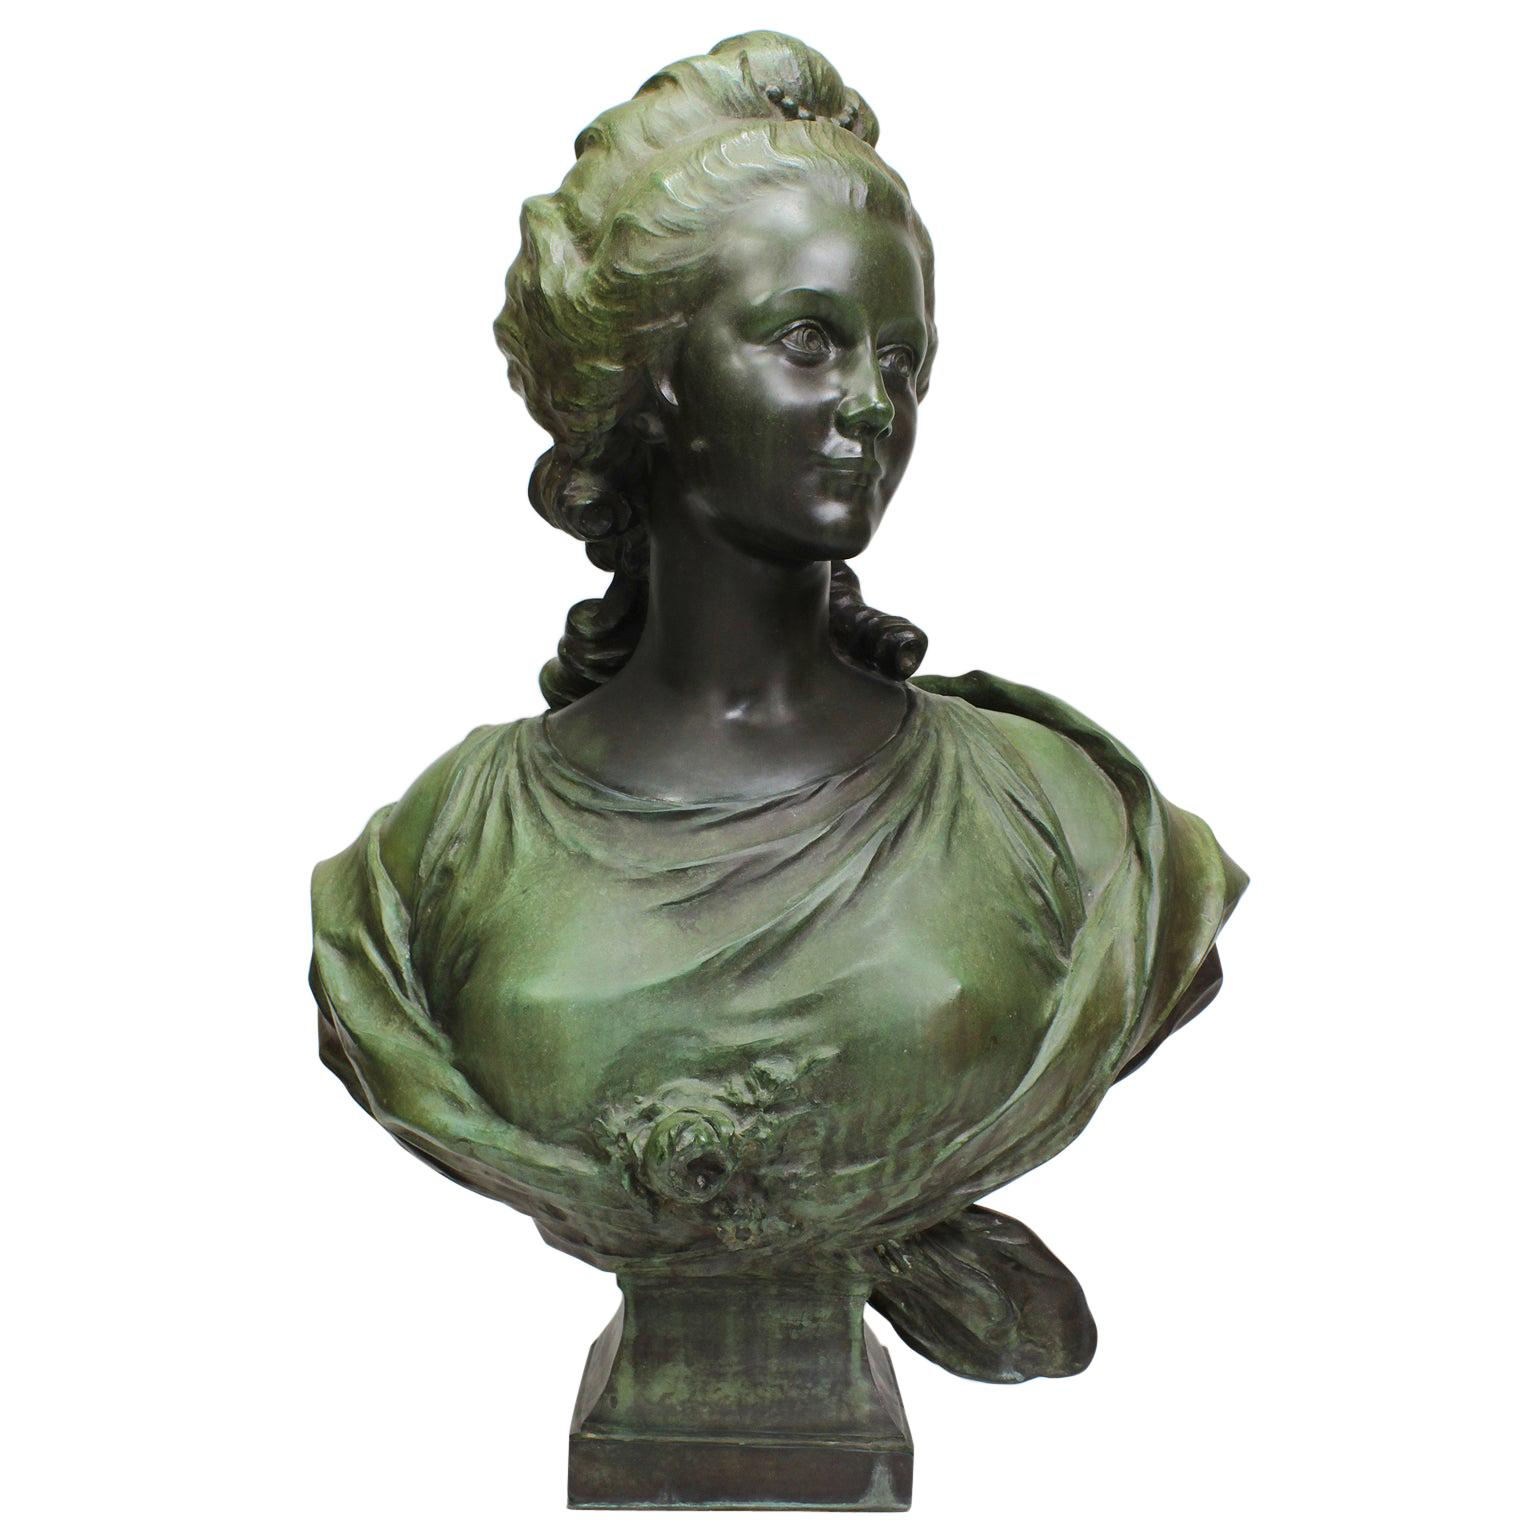 French 19th-20th Century Art-Nouveau Bronze Patinated Bust of Marie Antoinette